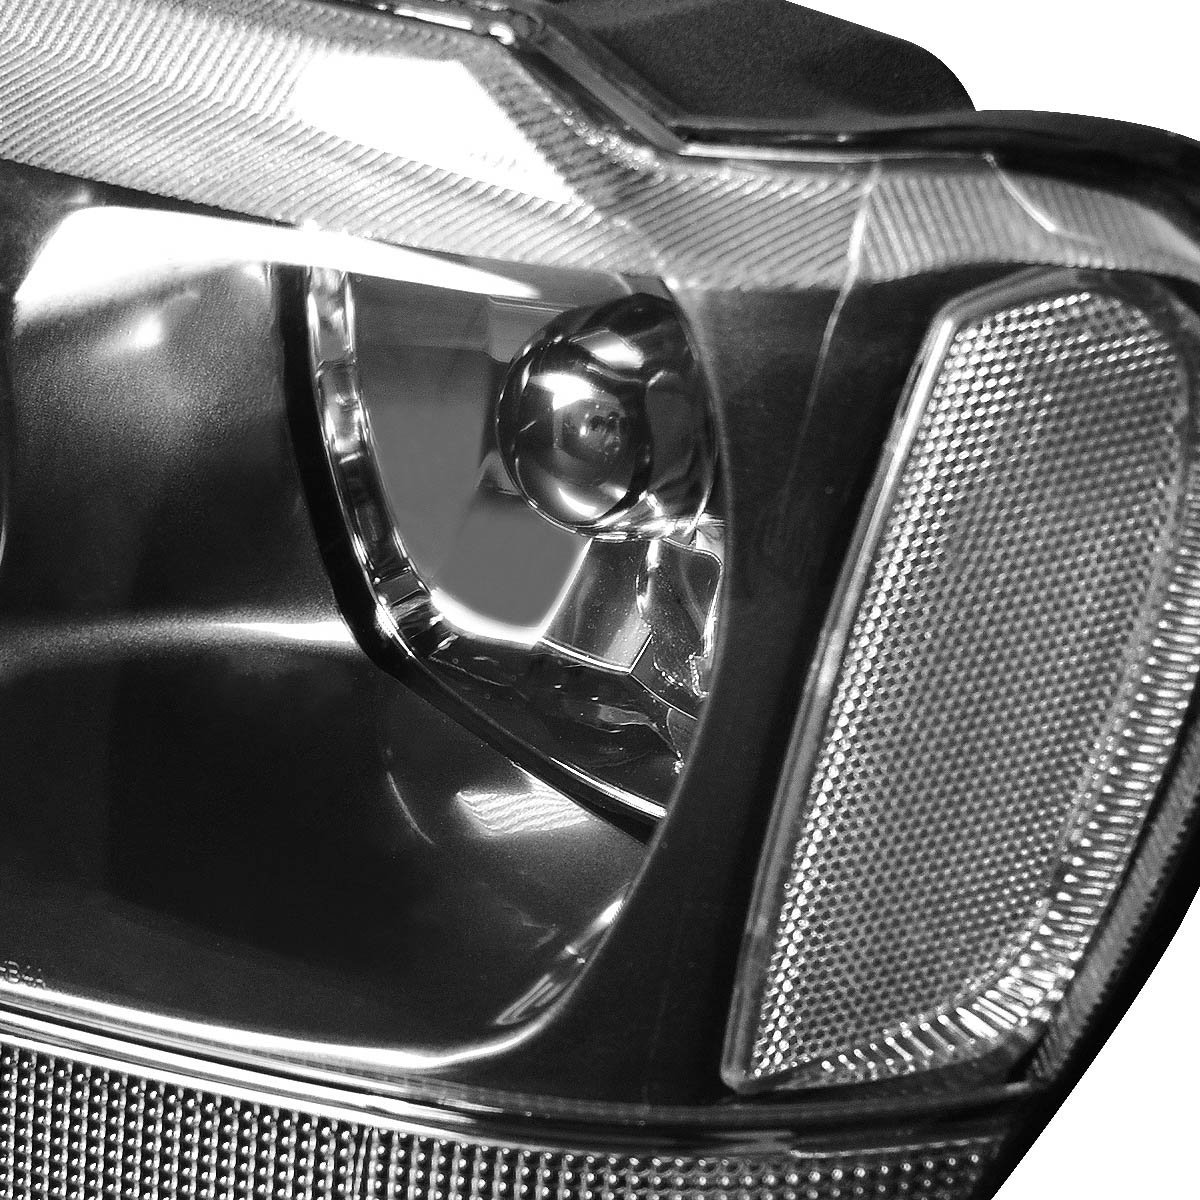 99 04 jeep grand cherokee replacement crystal headlights black clear